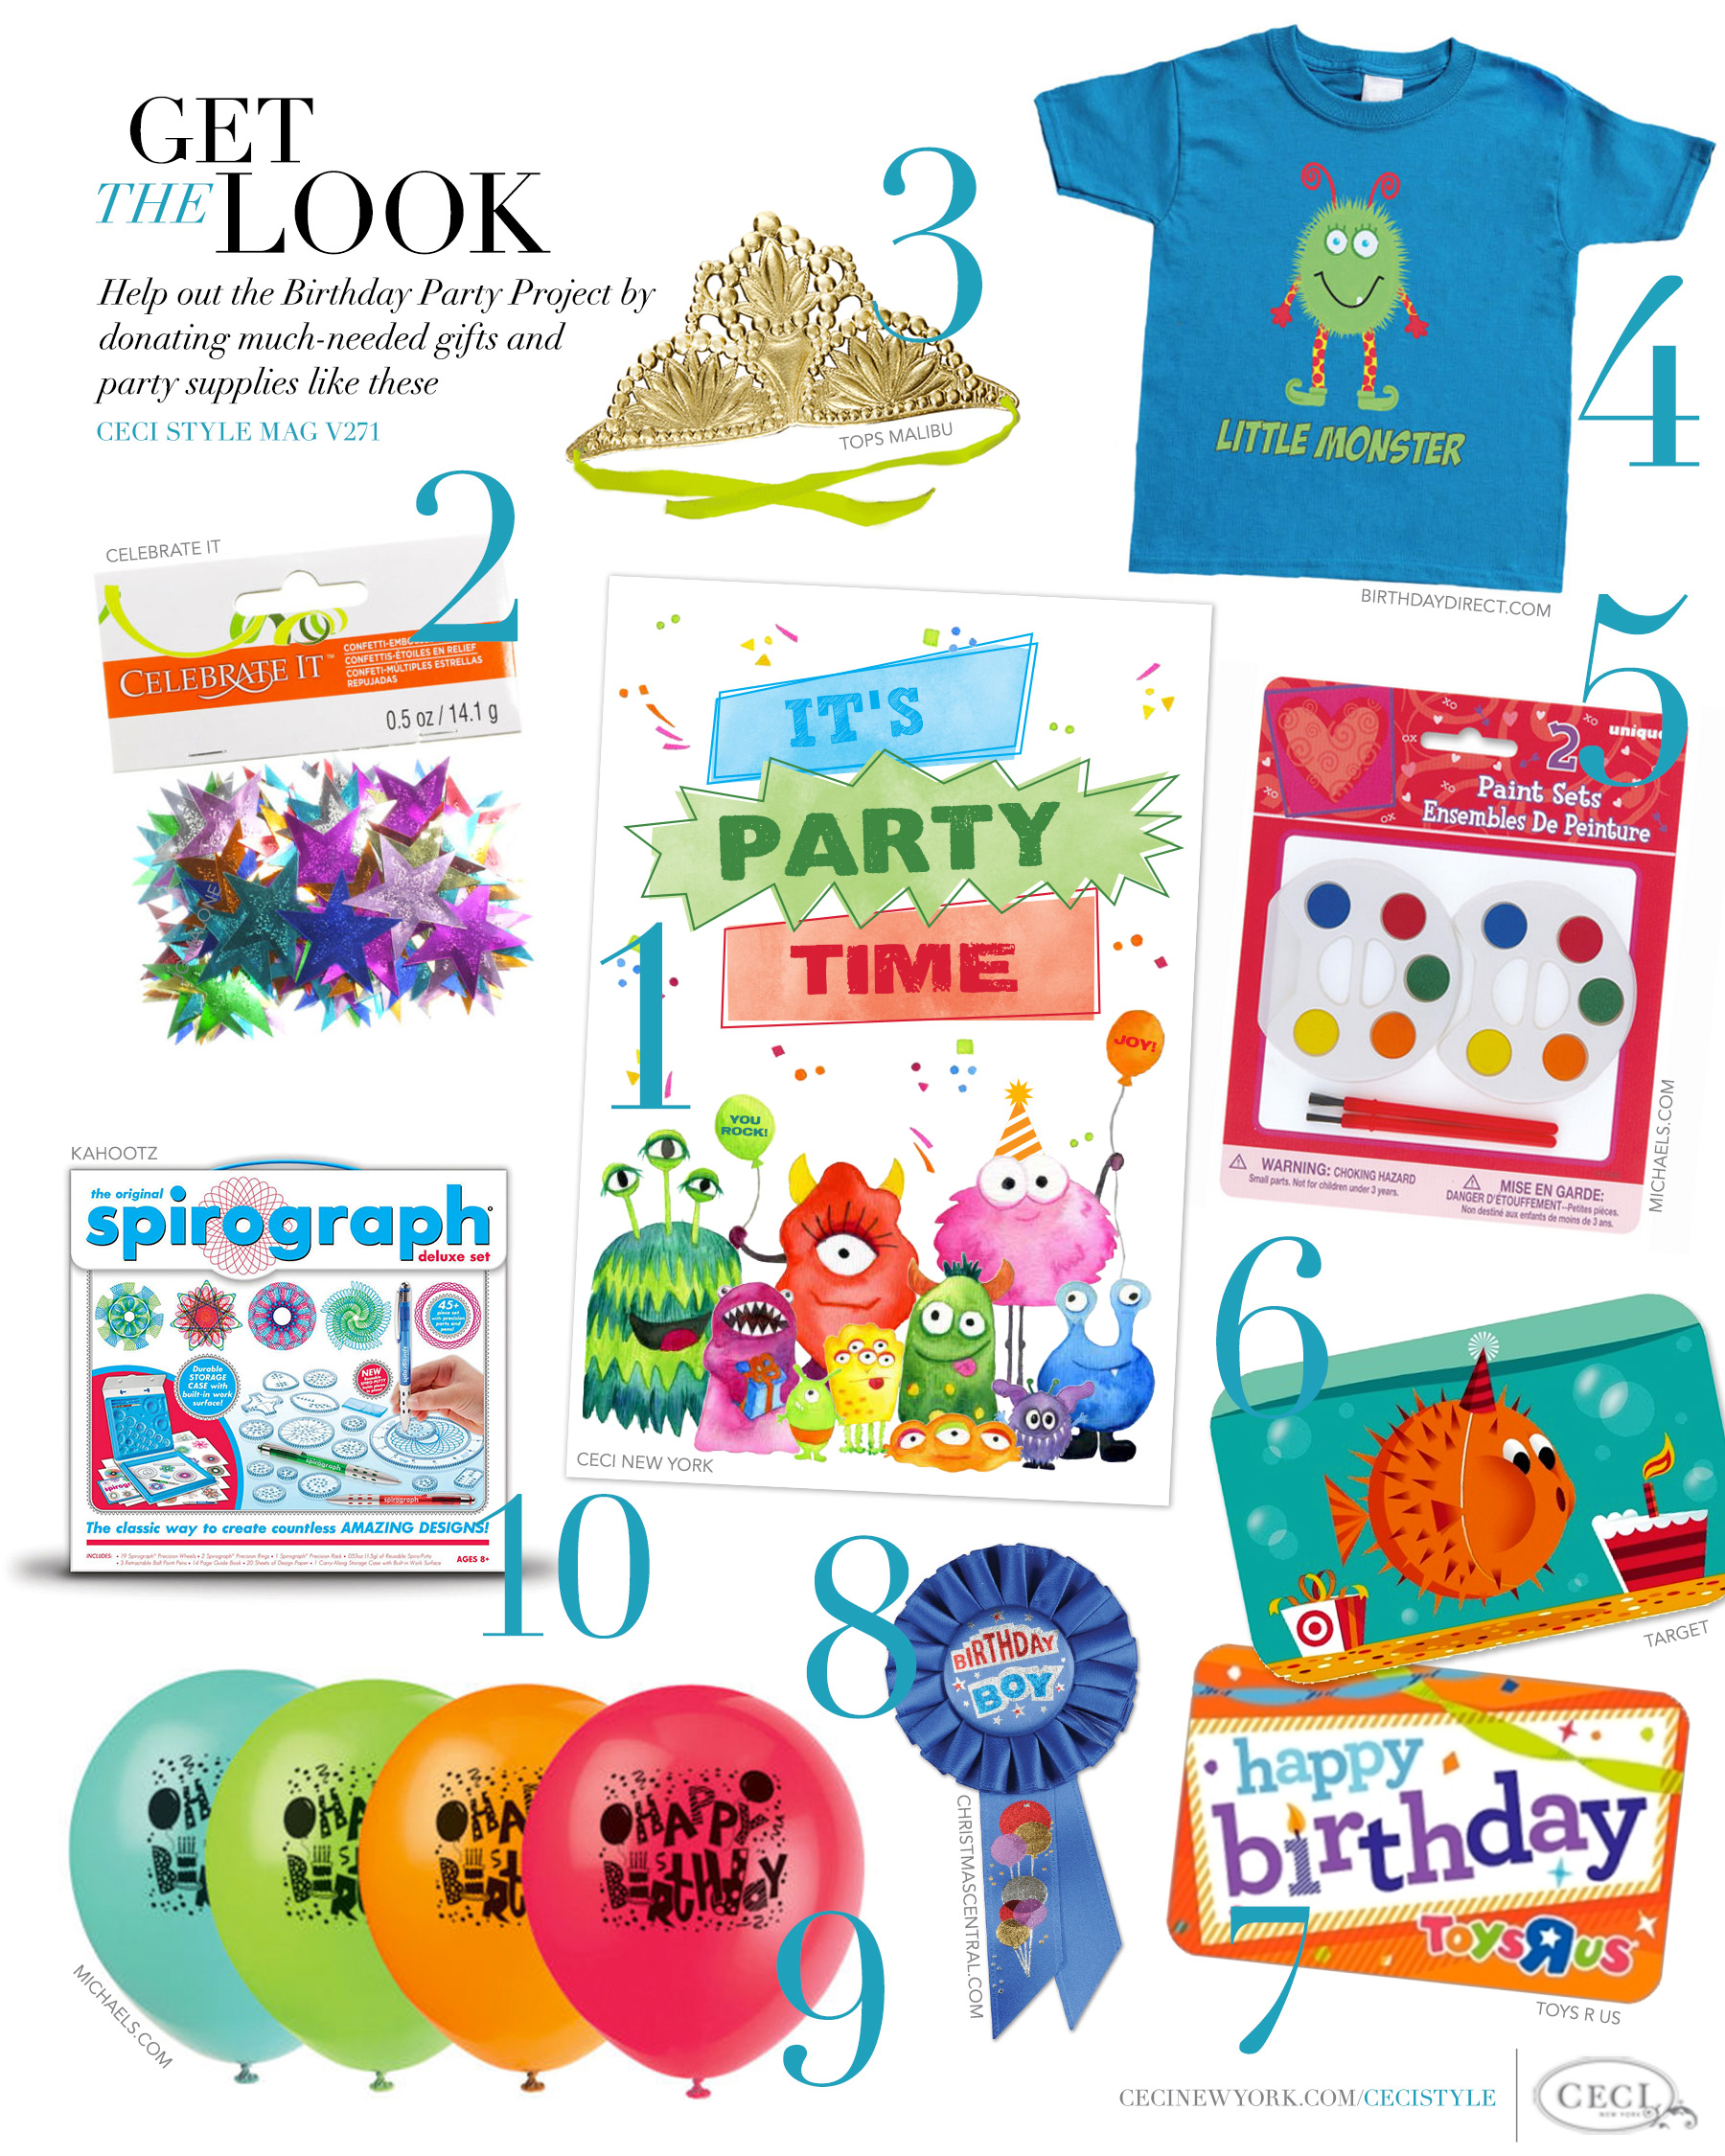 CeciStyle Magazine v271: Get The Look - Ceci New York Gives Back - Help out the Birthday Party Project by donating much-needed gifts and party supplies like these. - Birthday Party Invitations by Ceci New York - the birthday party project, giving back, ceci new york, donation, how to help a child in need, michaels, charity, tops malibu, gift cards, kid's birthday party, homeless children, toys r us, target